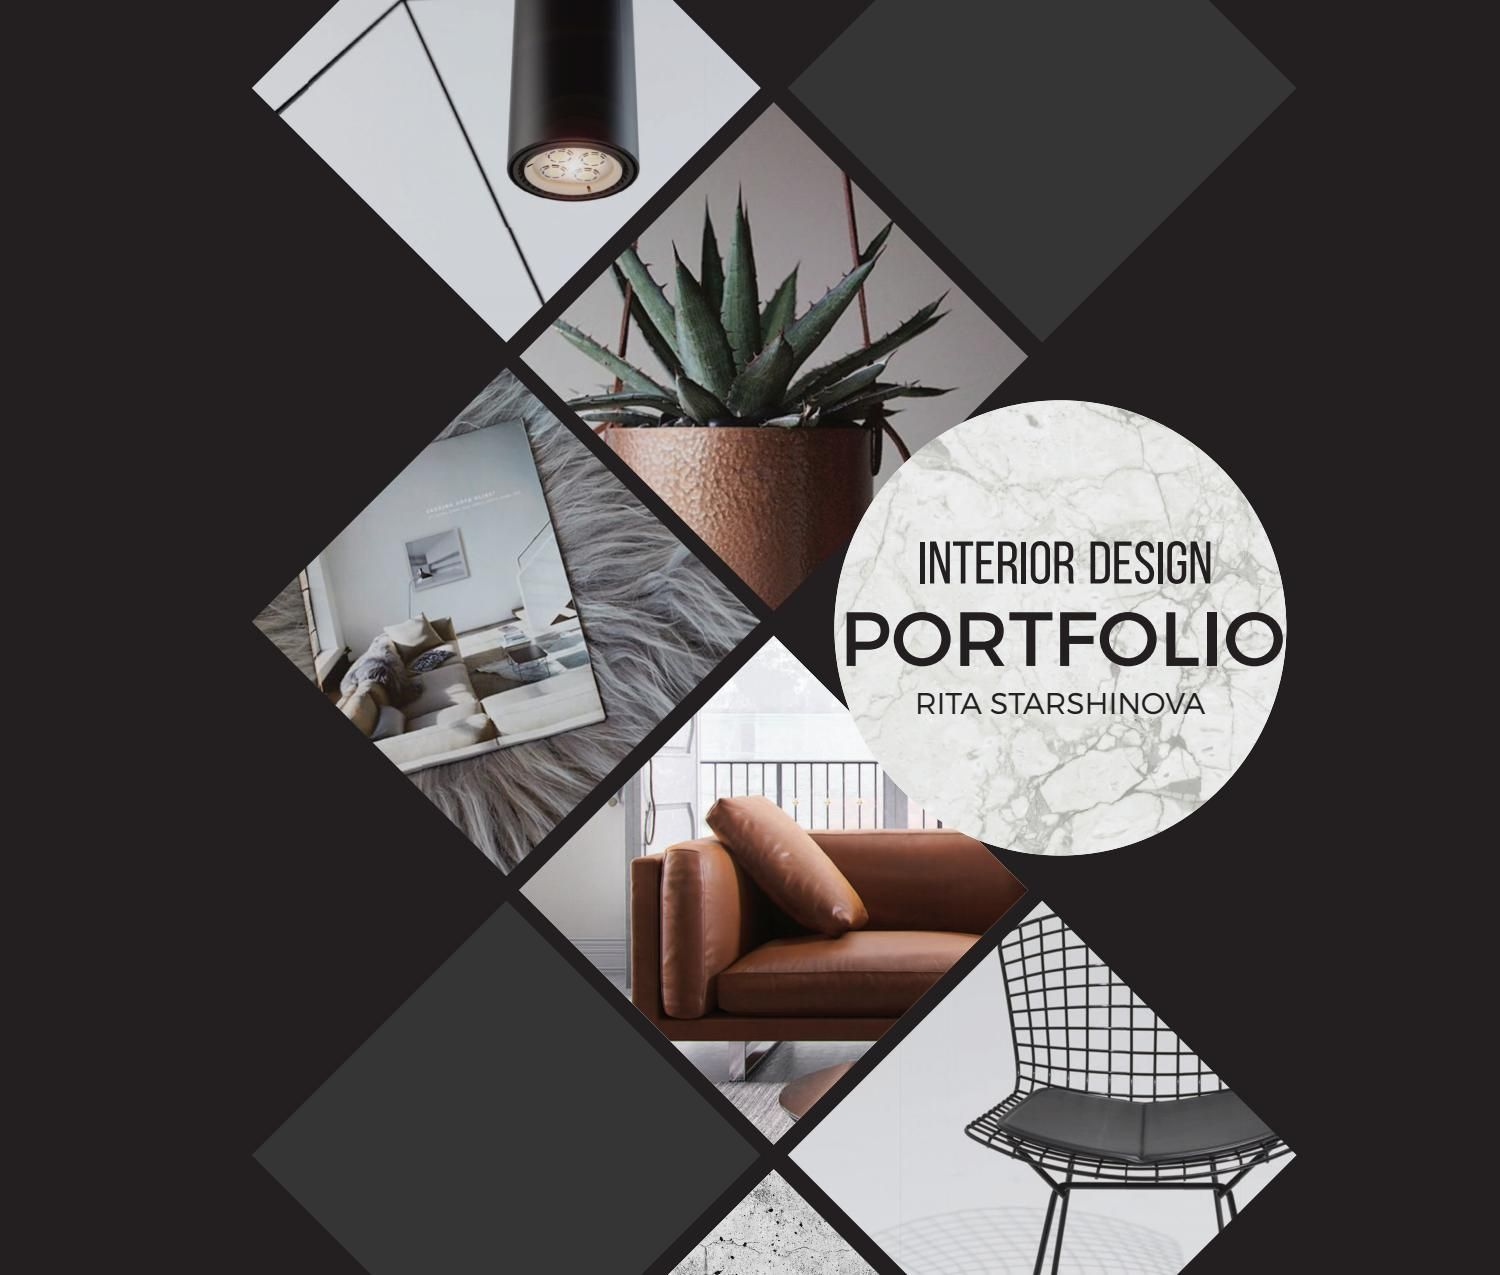 Rita starshinova portfolio interiors portfolio ideas for Interior design in a box